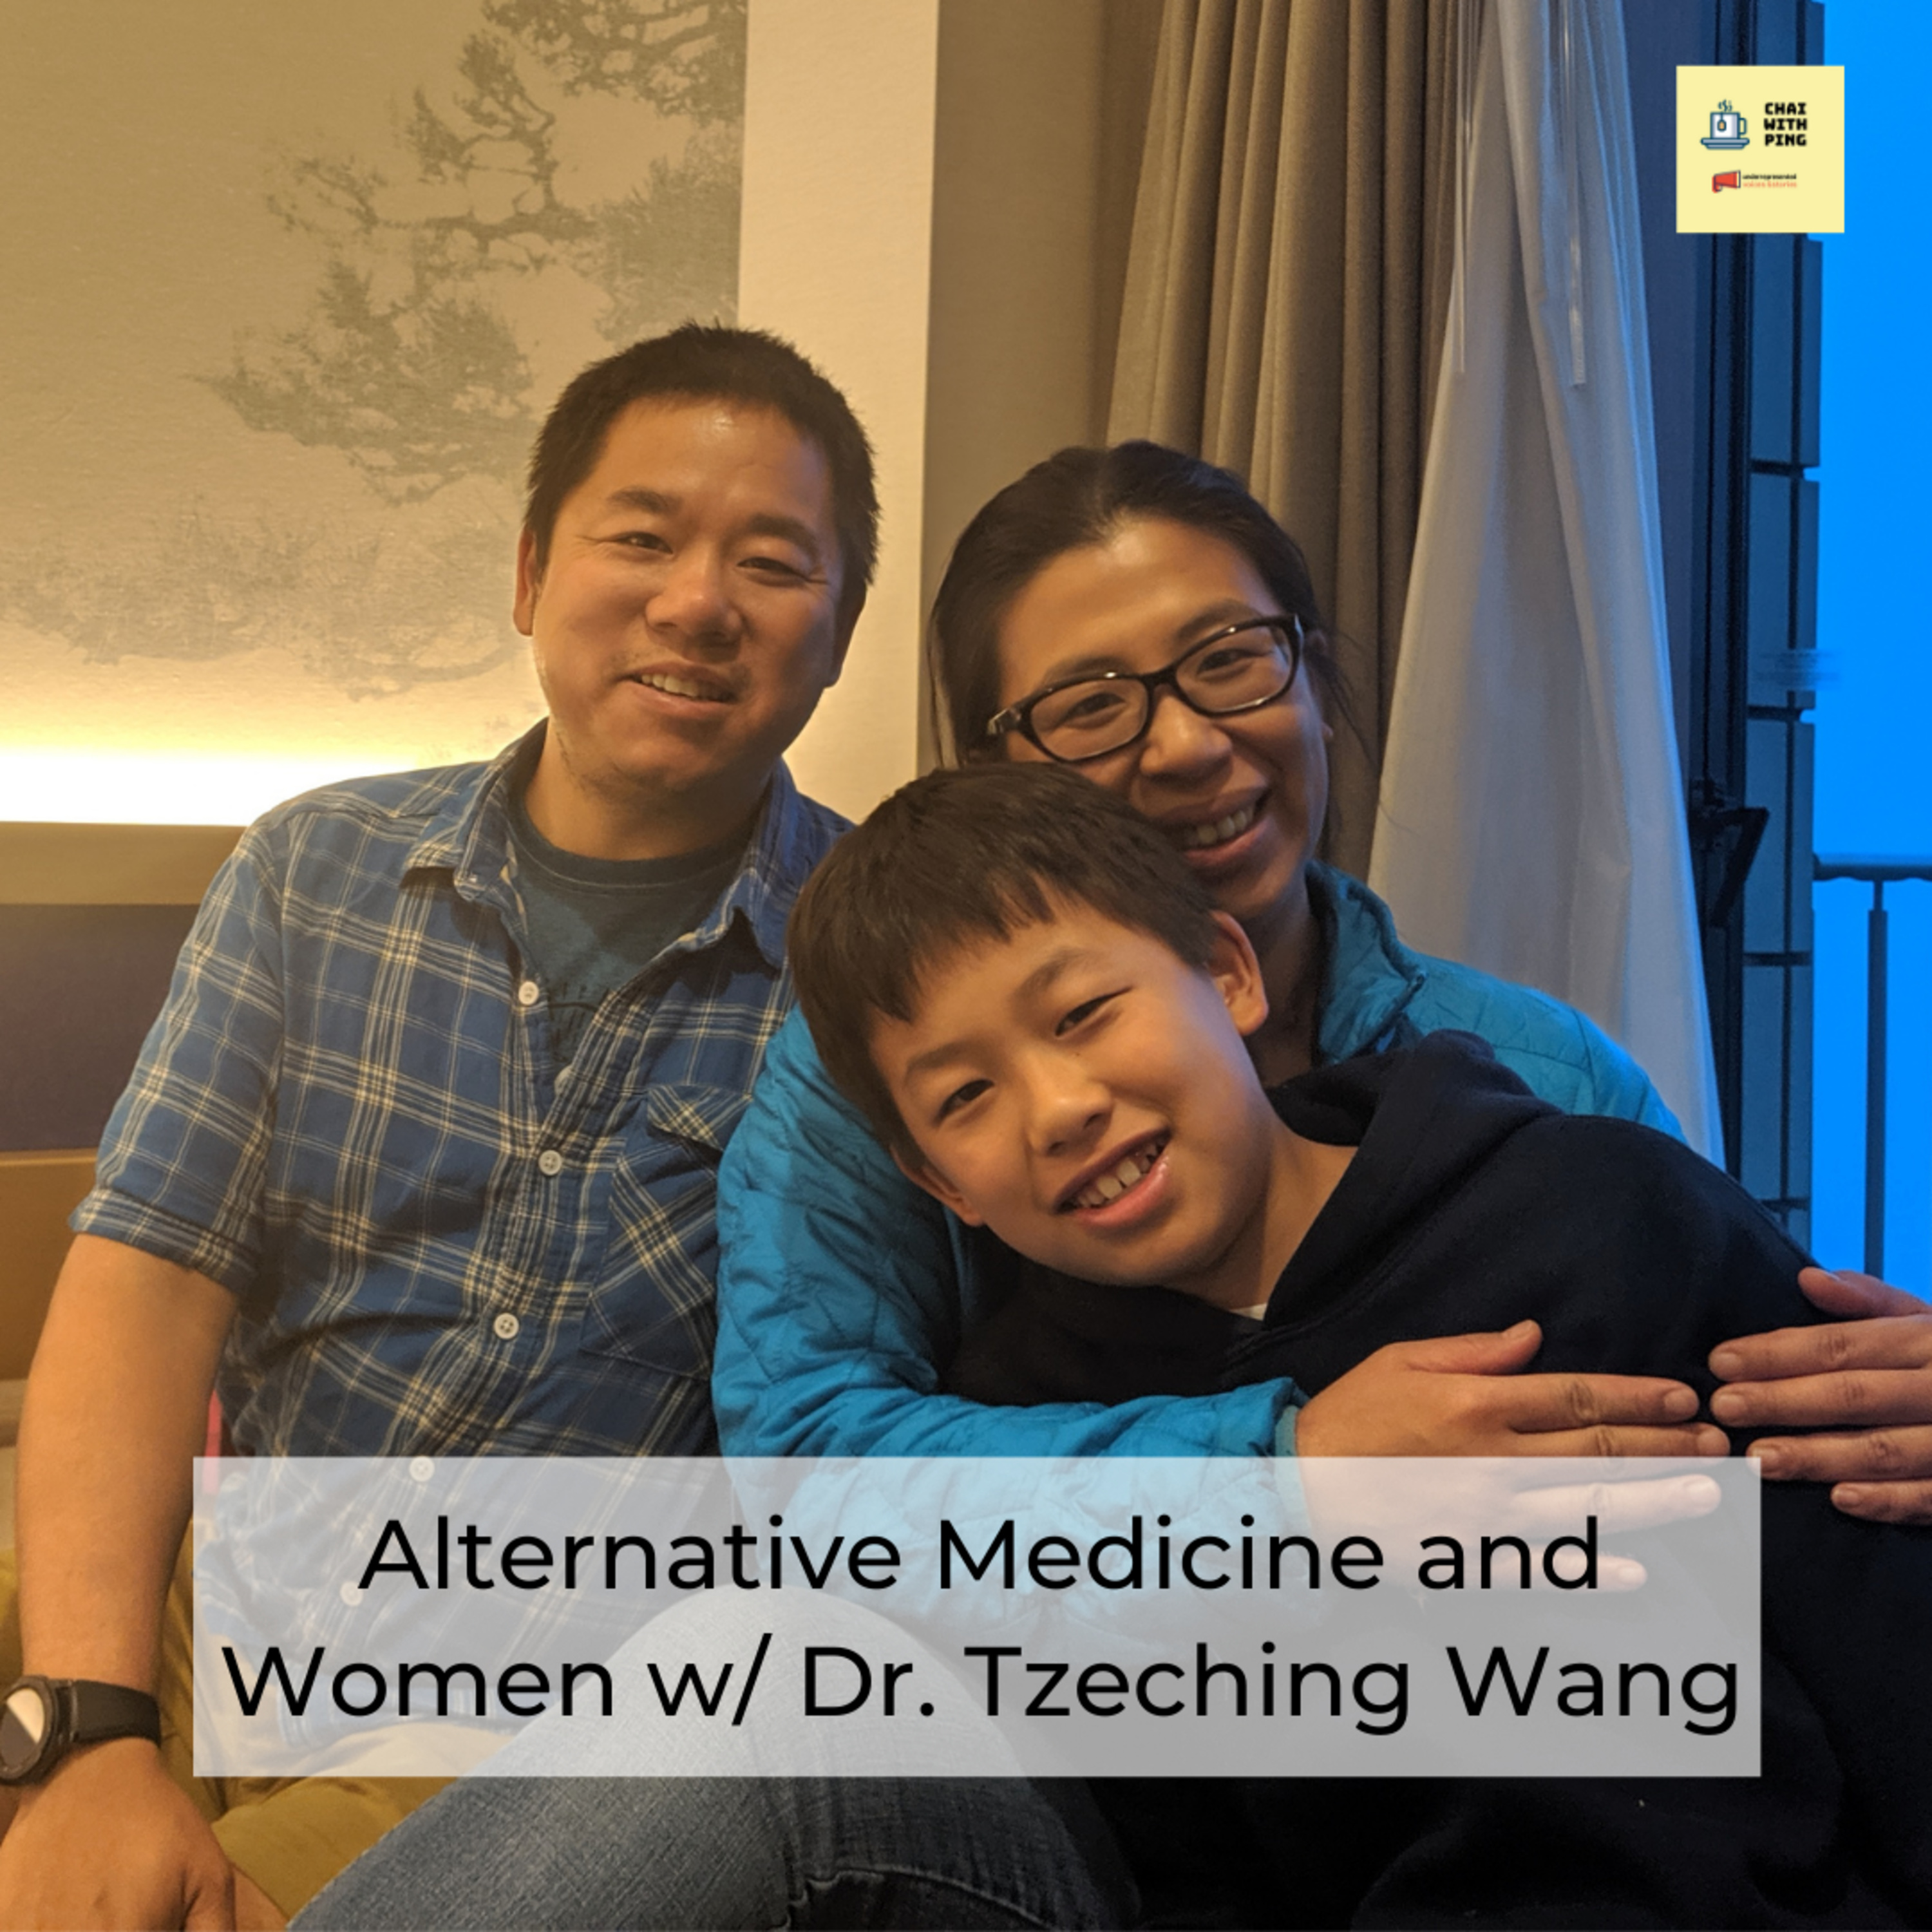 [Health] Alternative Medicine & Women w/ Dr. Tzeching Wang #43